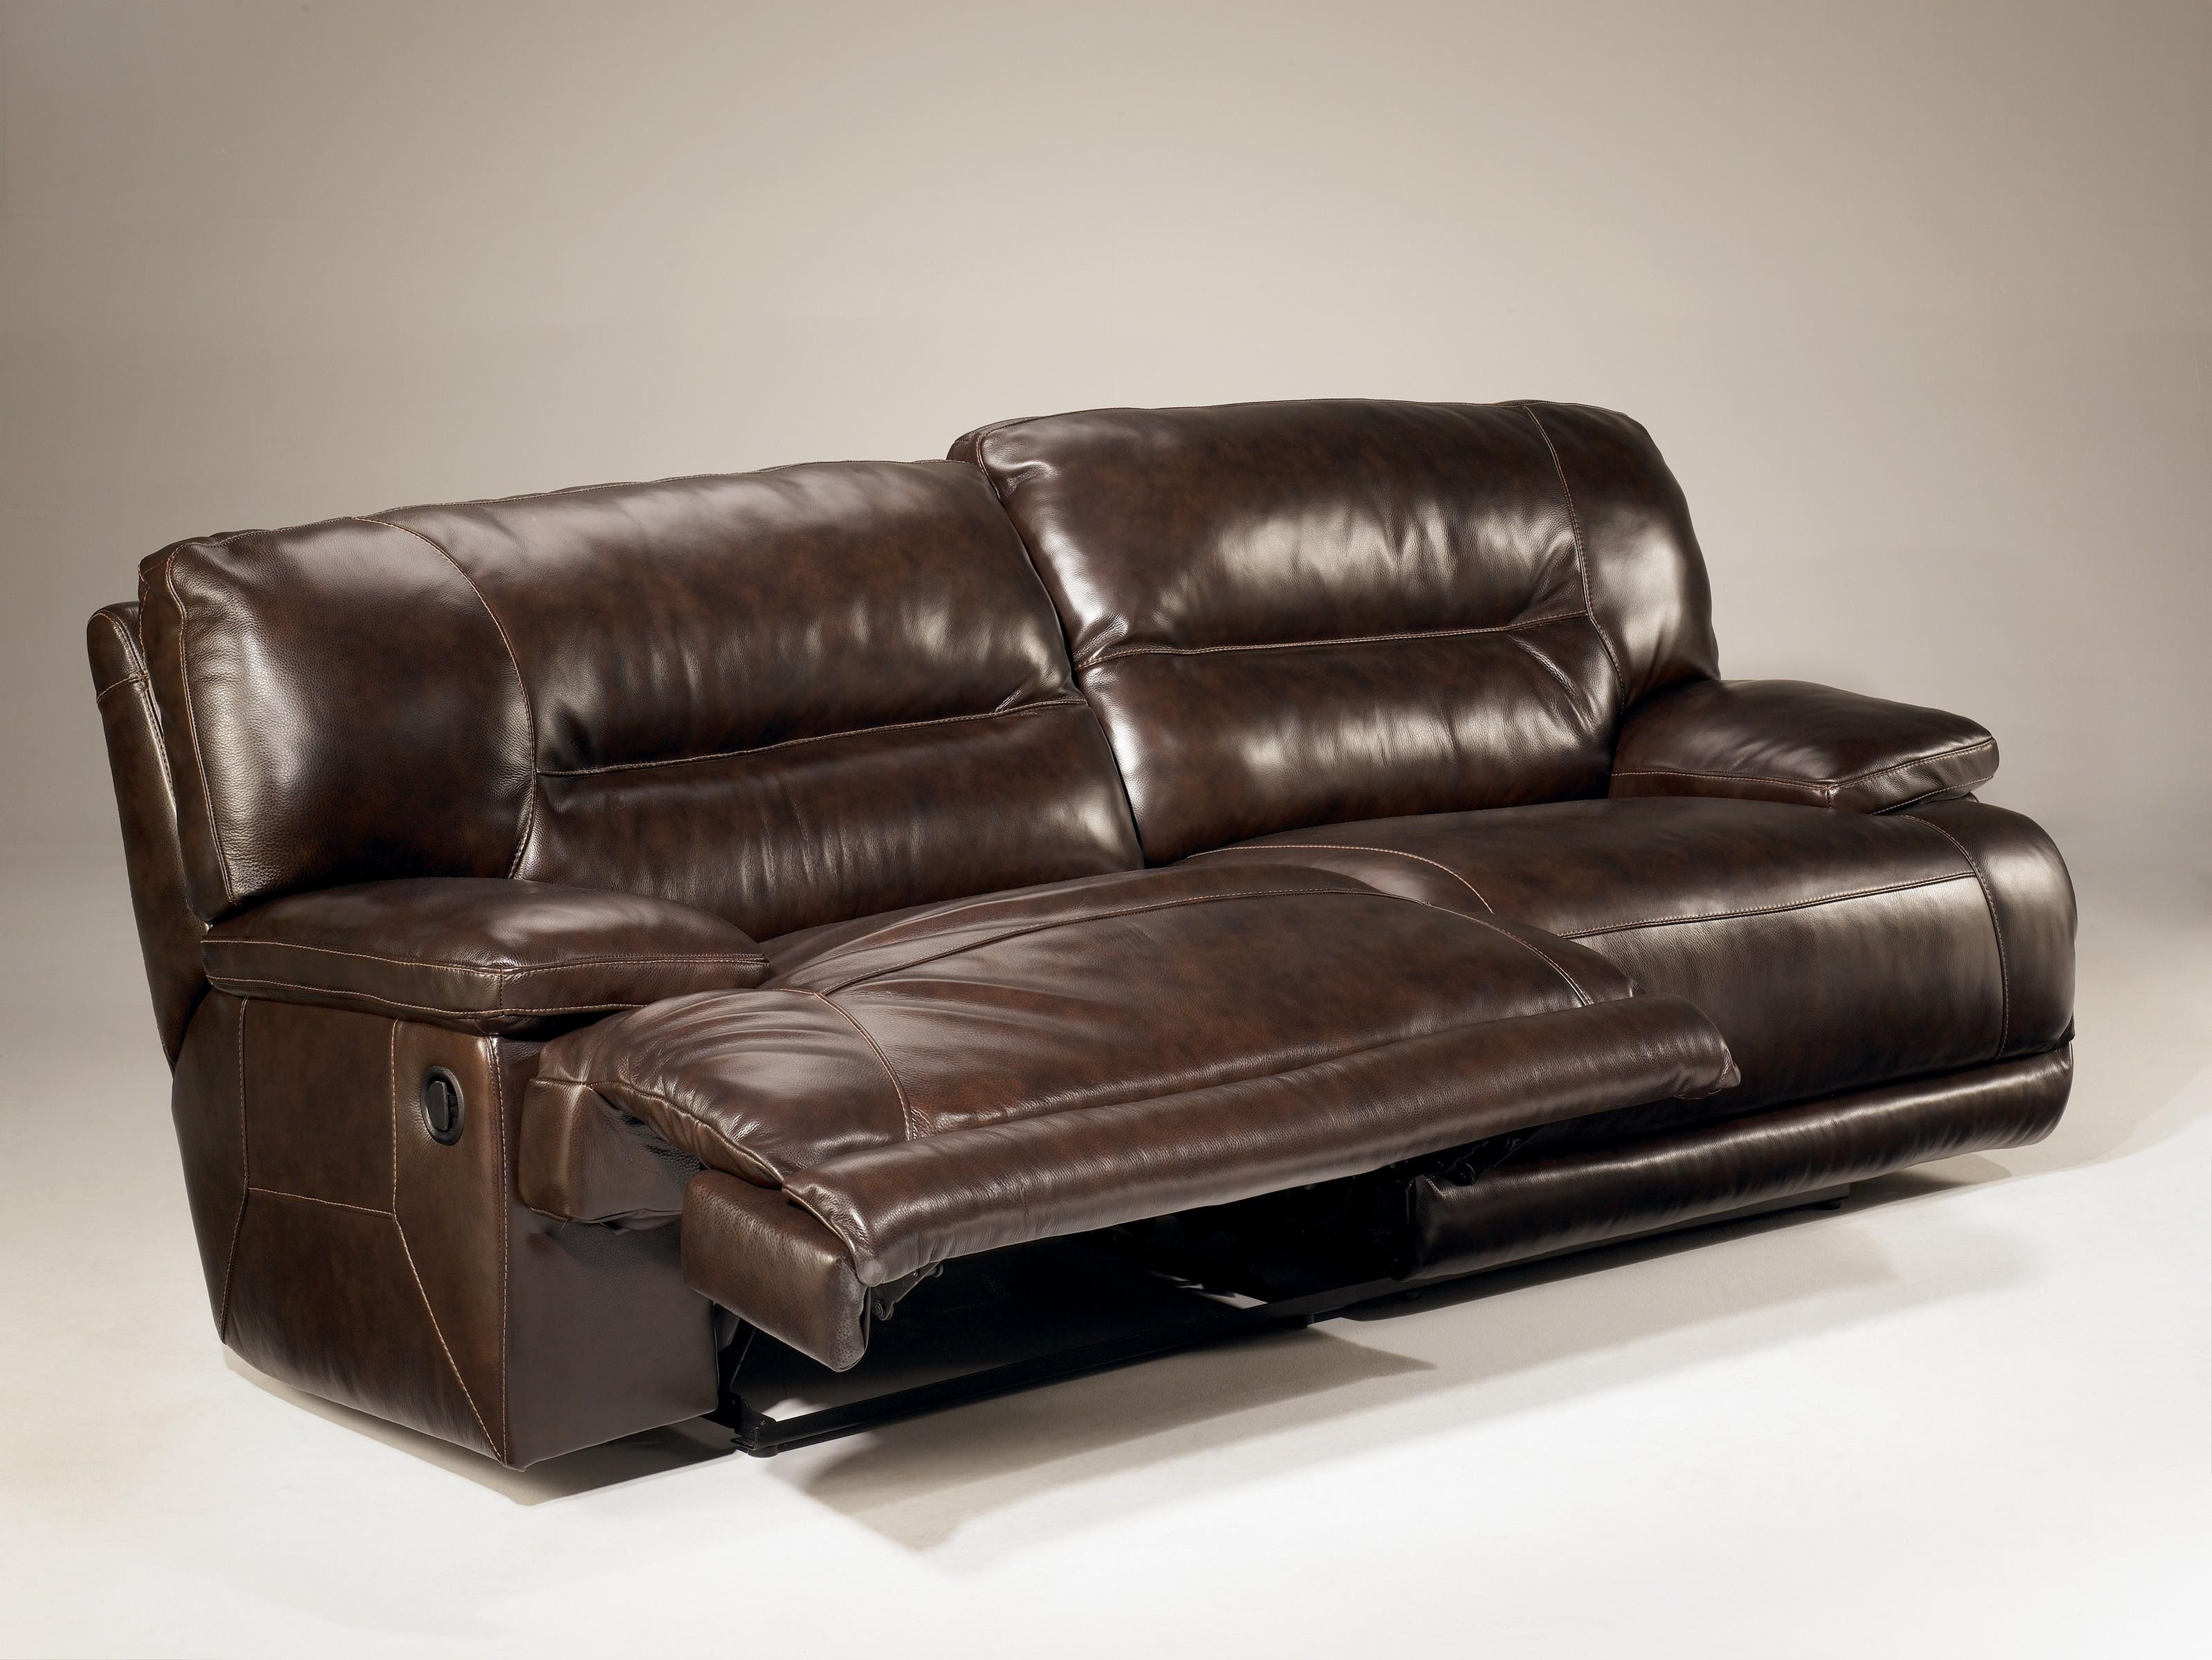 reclining two seat sofa long leather 20 collection of 2 recliner sofas ideas